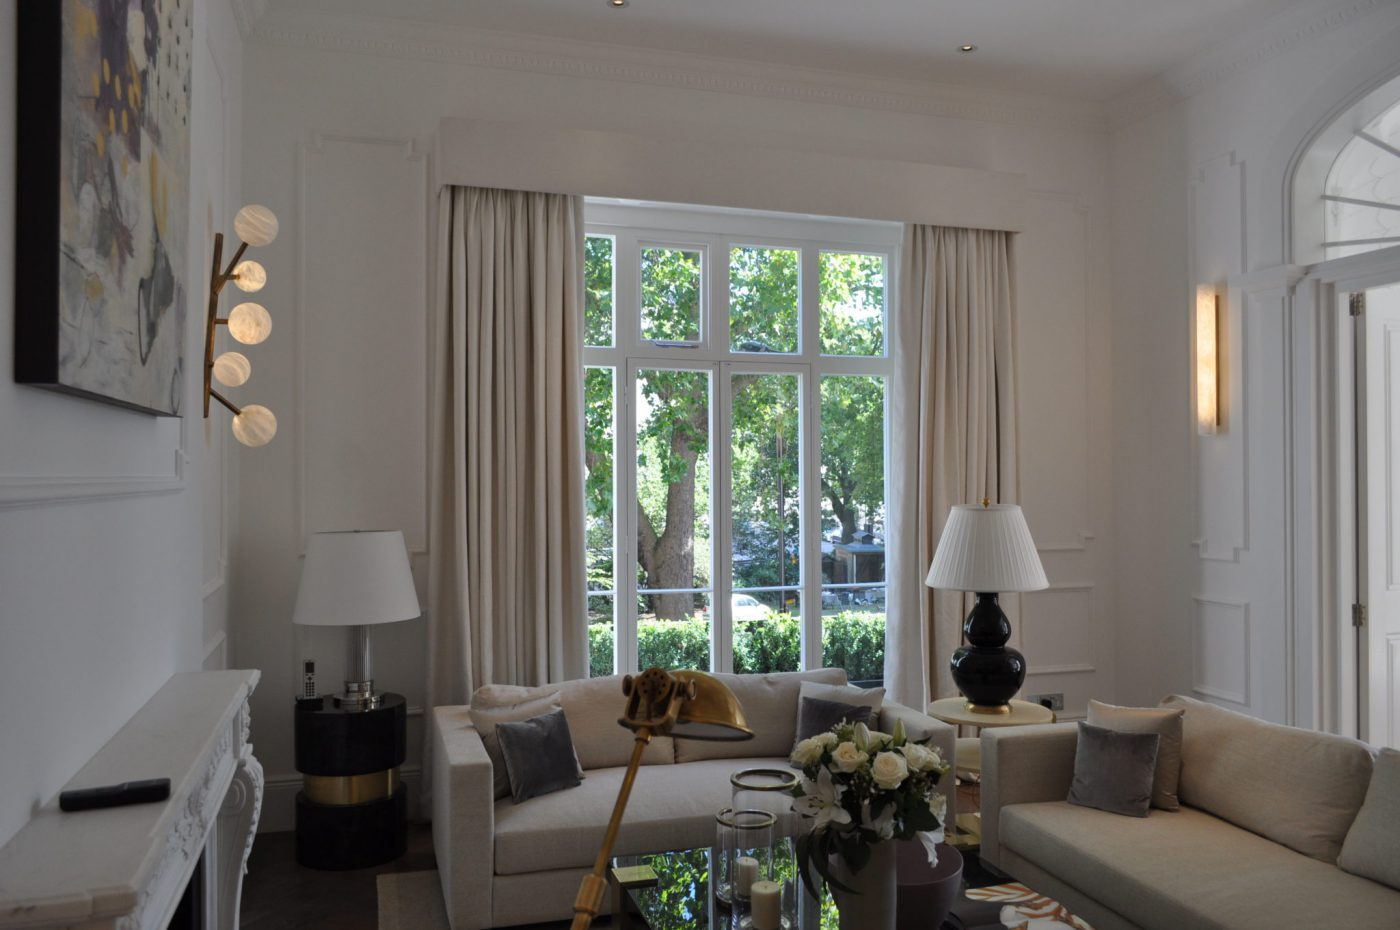 Painting and Decorating services in London